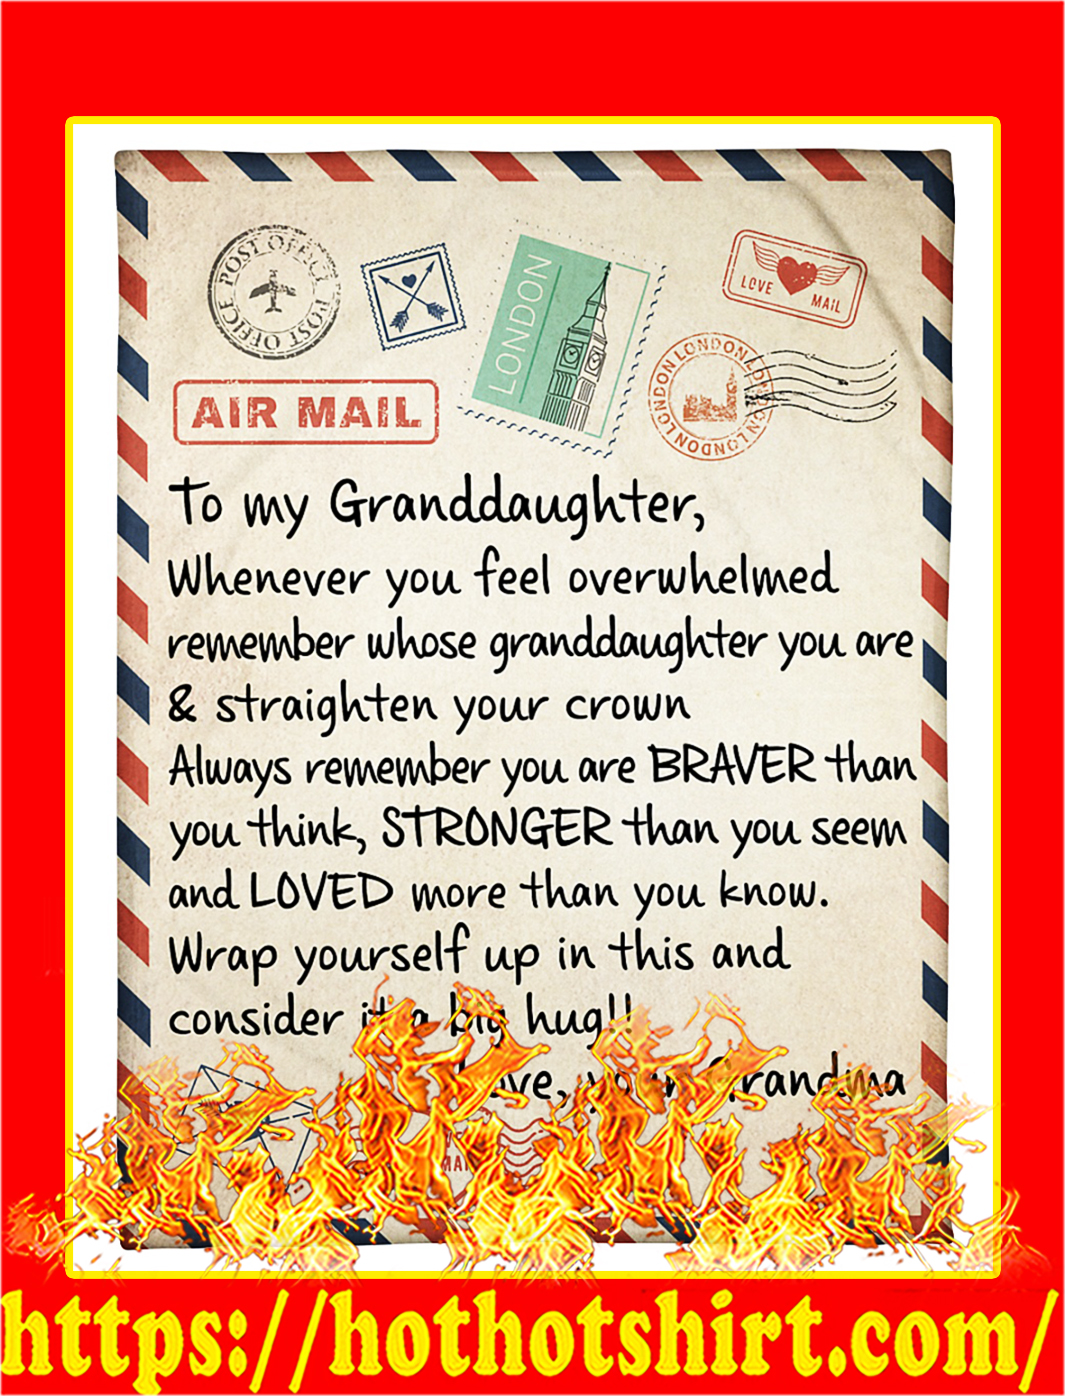 Air mail to my granddaughter love your grandma quilt blanket - Small